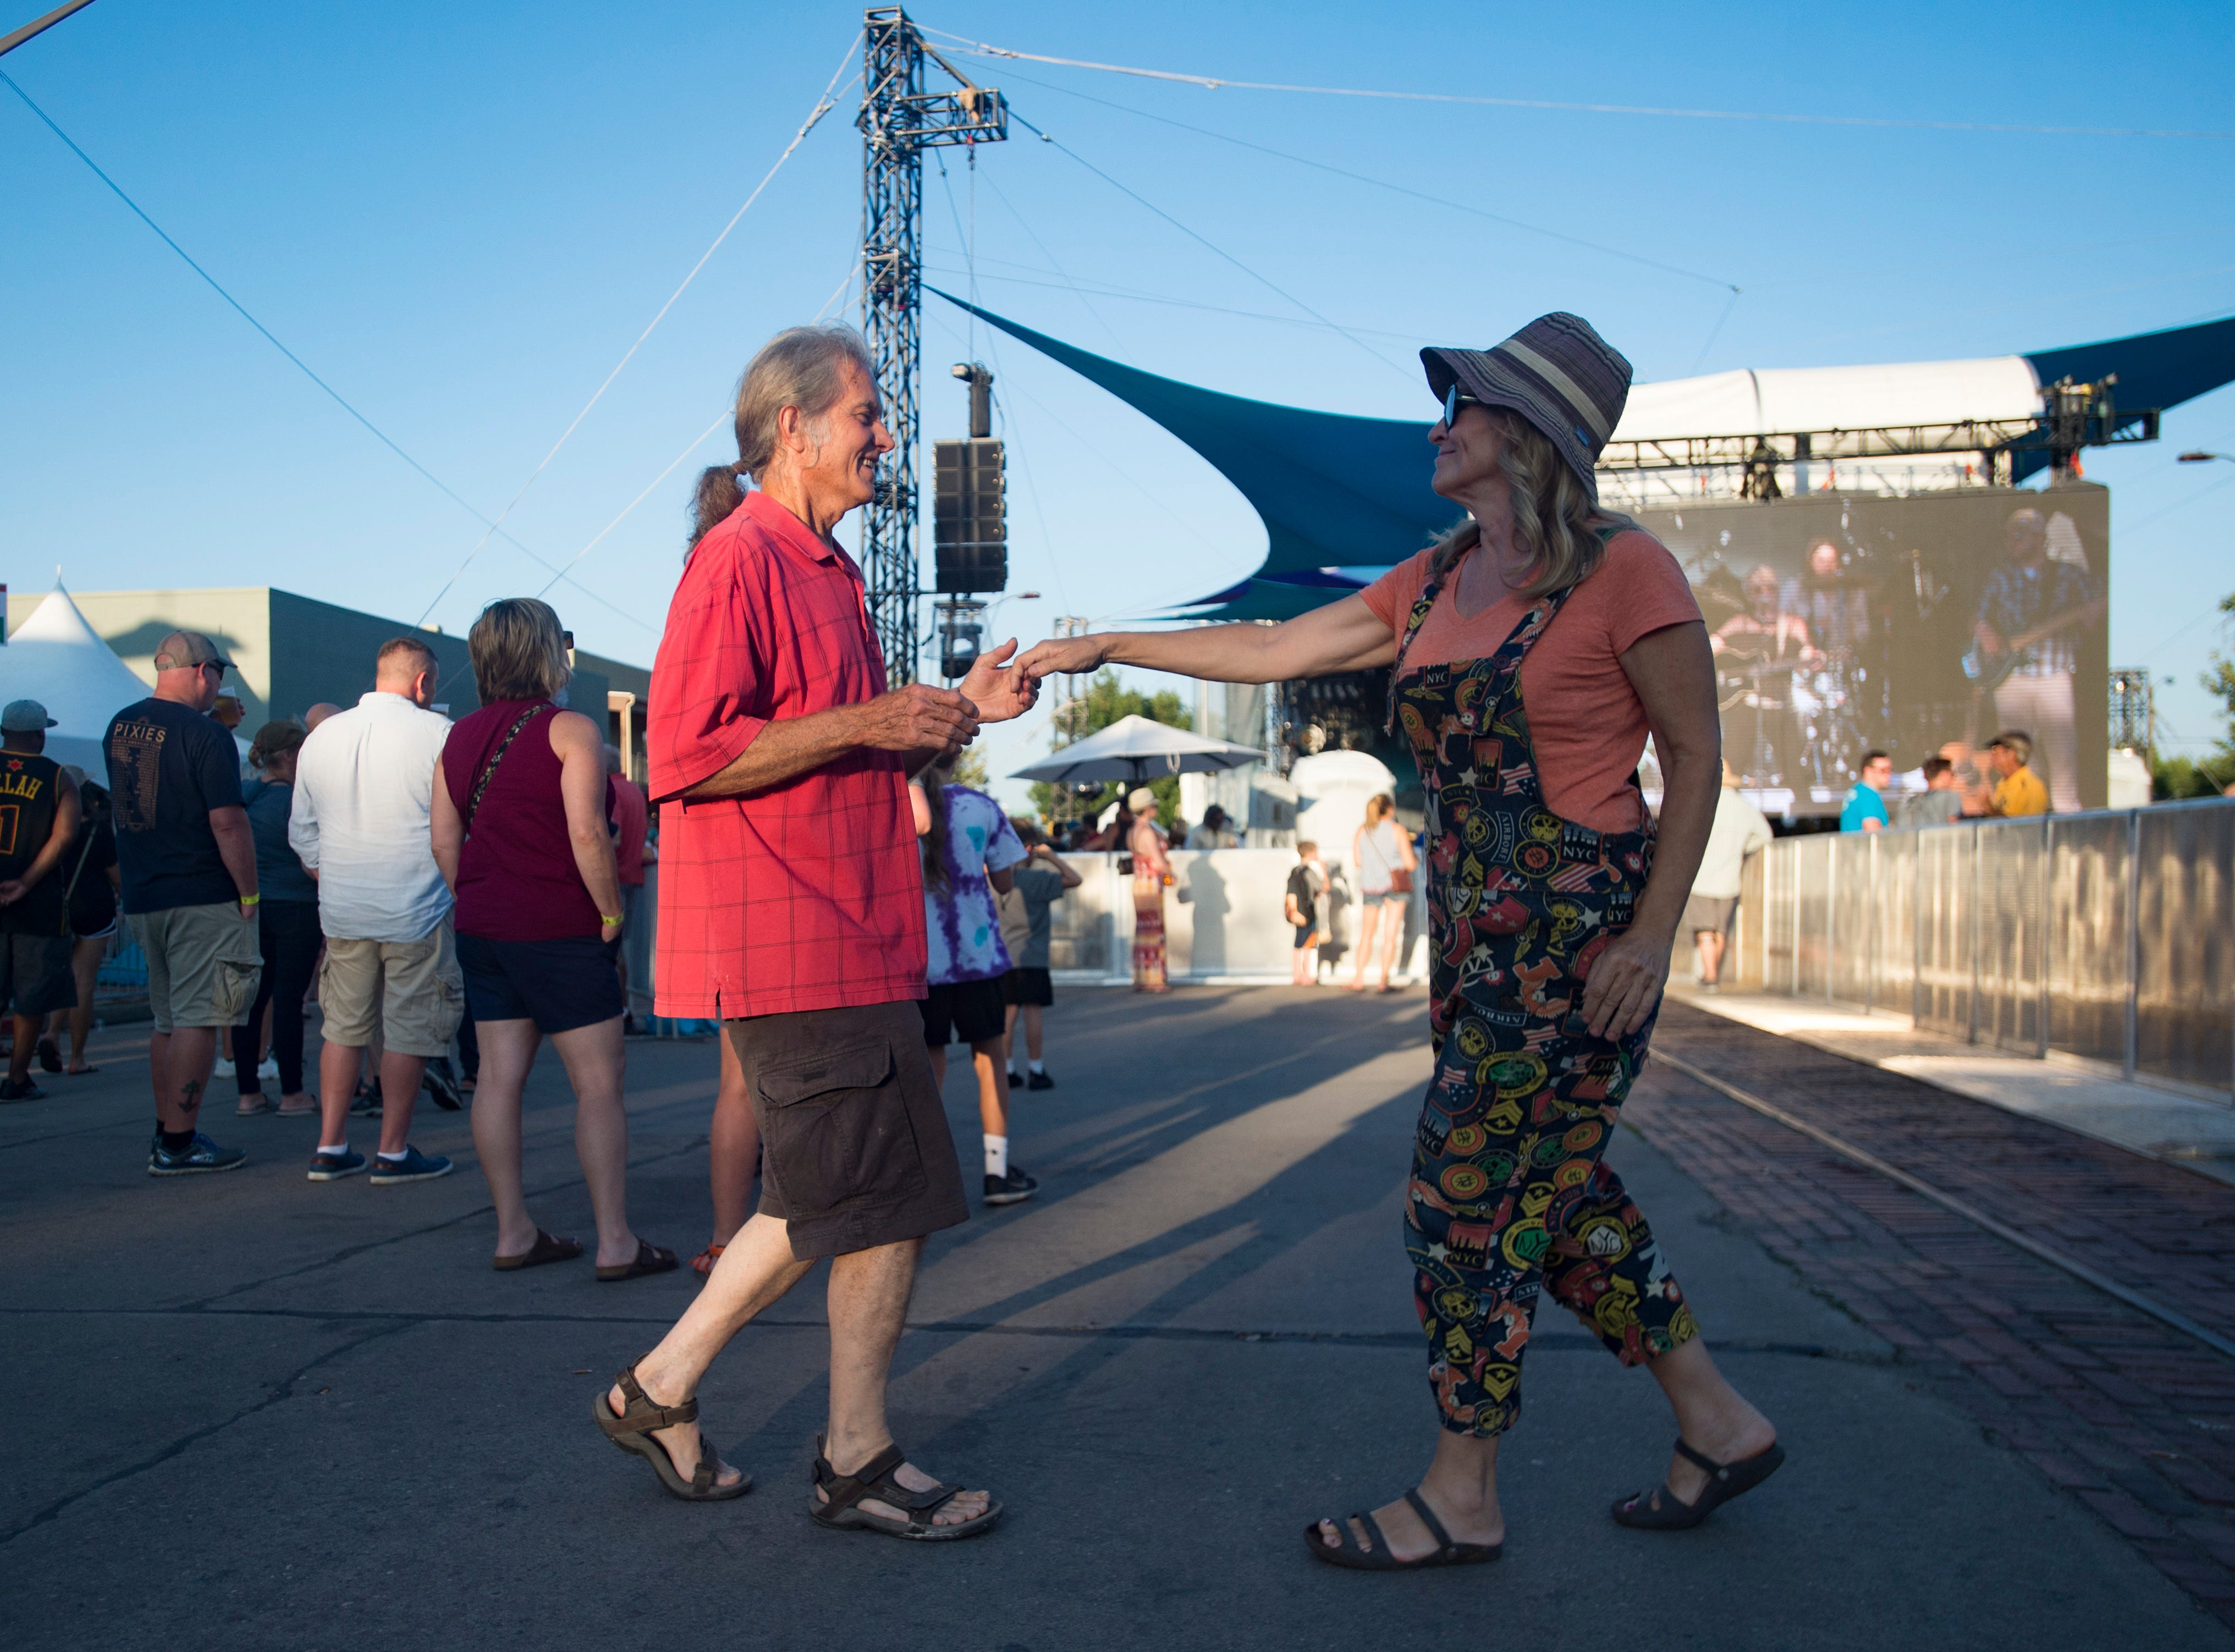 Les Sunde and Maria Singleton dance along to The Patti Fiasco at the Mountain Avenue Stage during Bohemian Nights at NewWestFest in Old Town on Saturday, August 11, 2018.